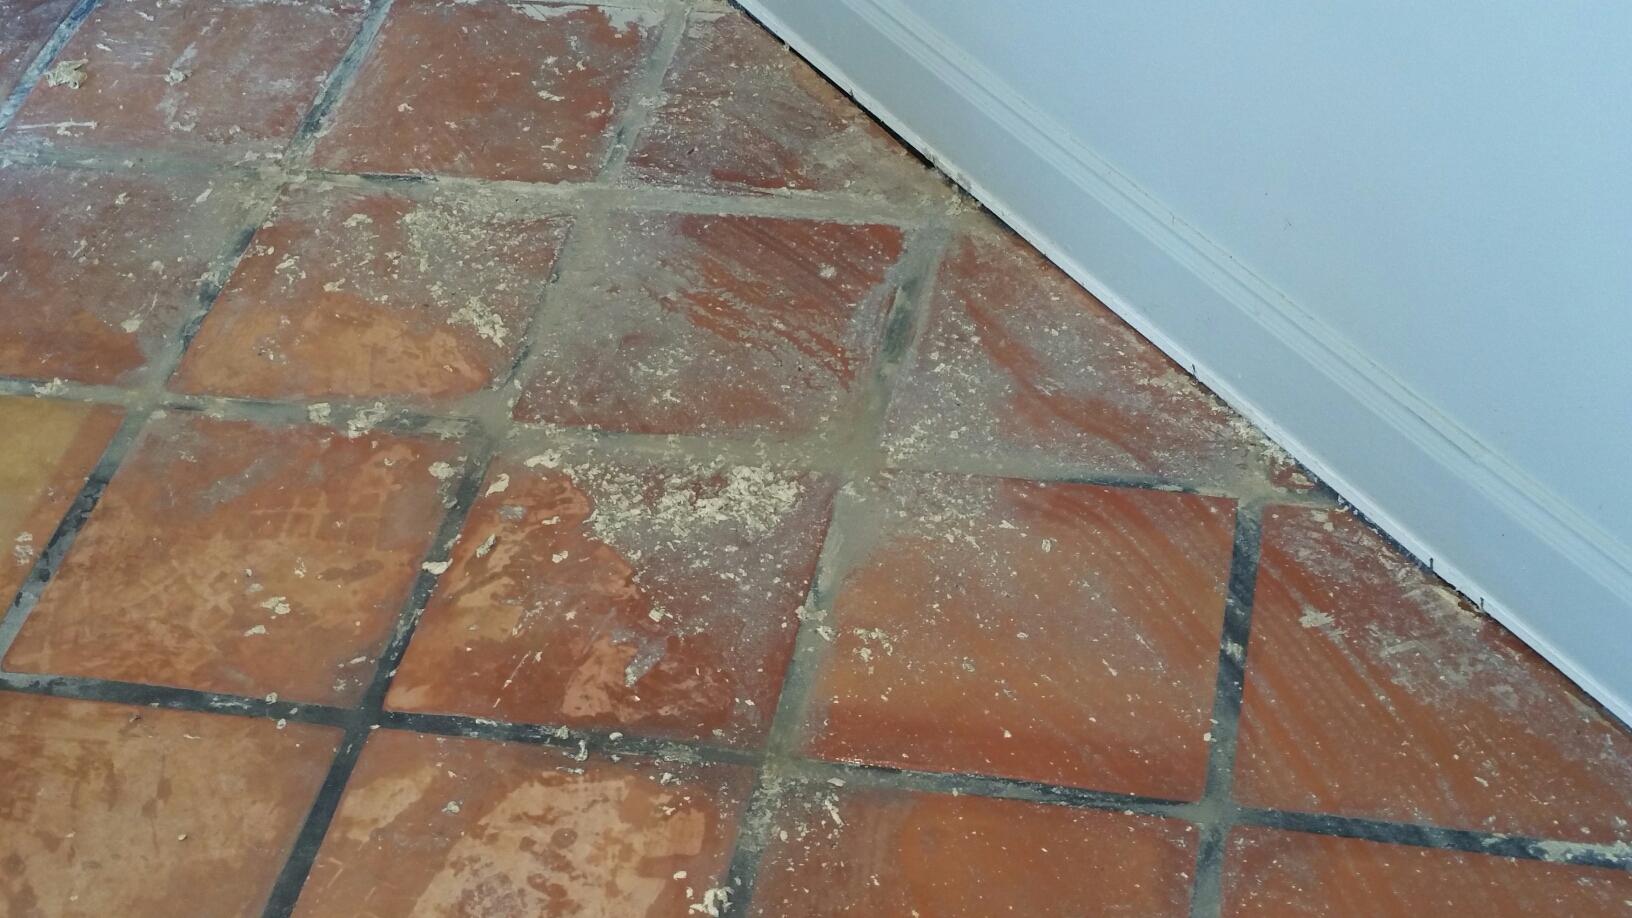 Scrubbing Grout Lines